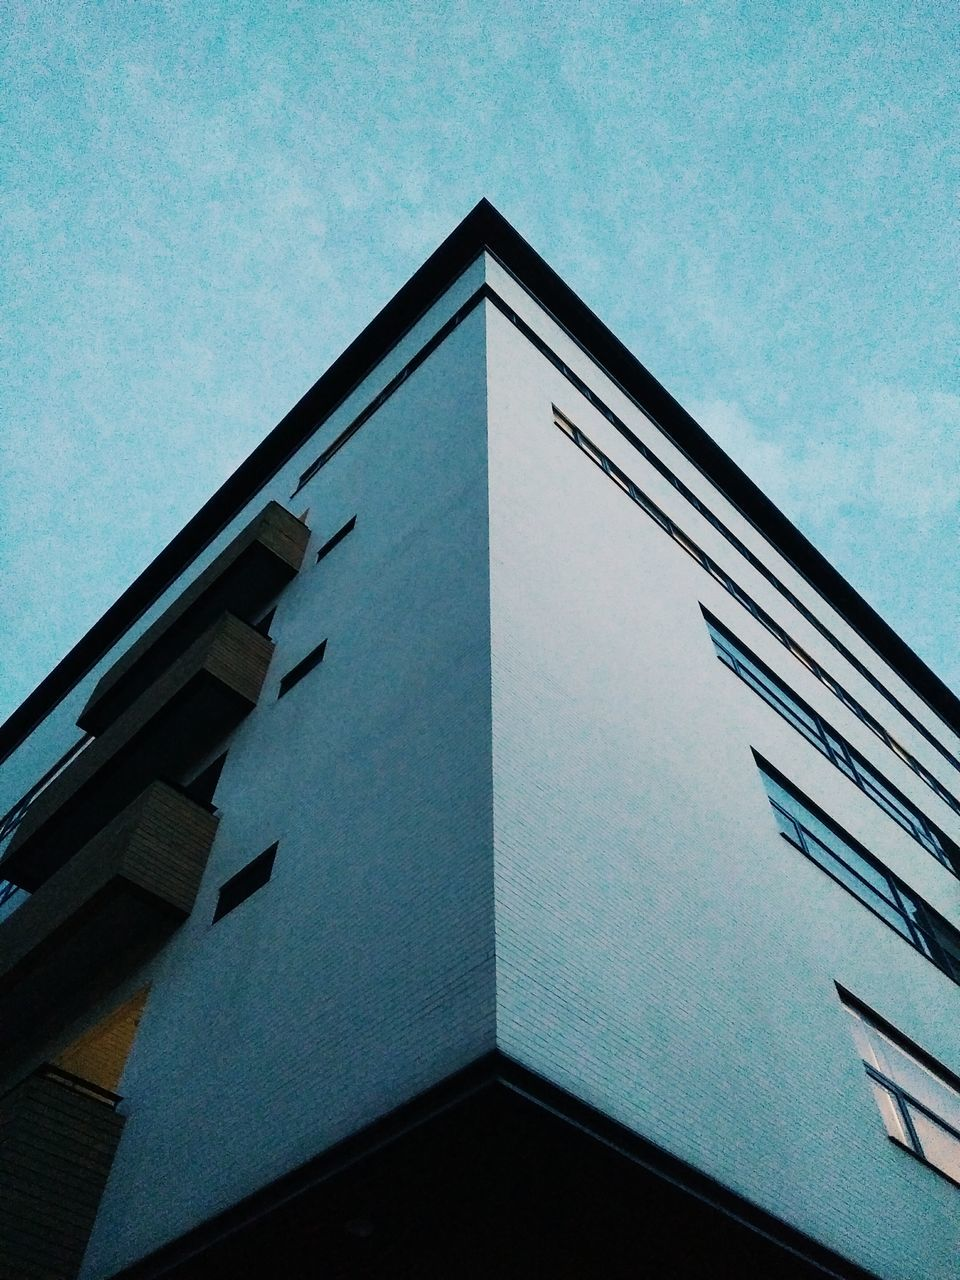 low angle view, architecture, built structure, building exterior, day, outdoors, no people, sky, window